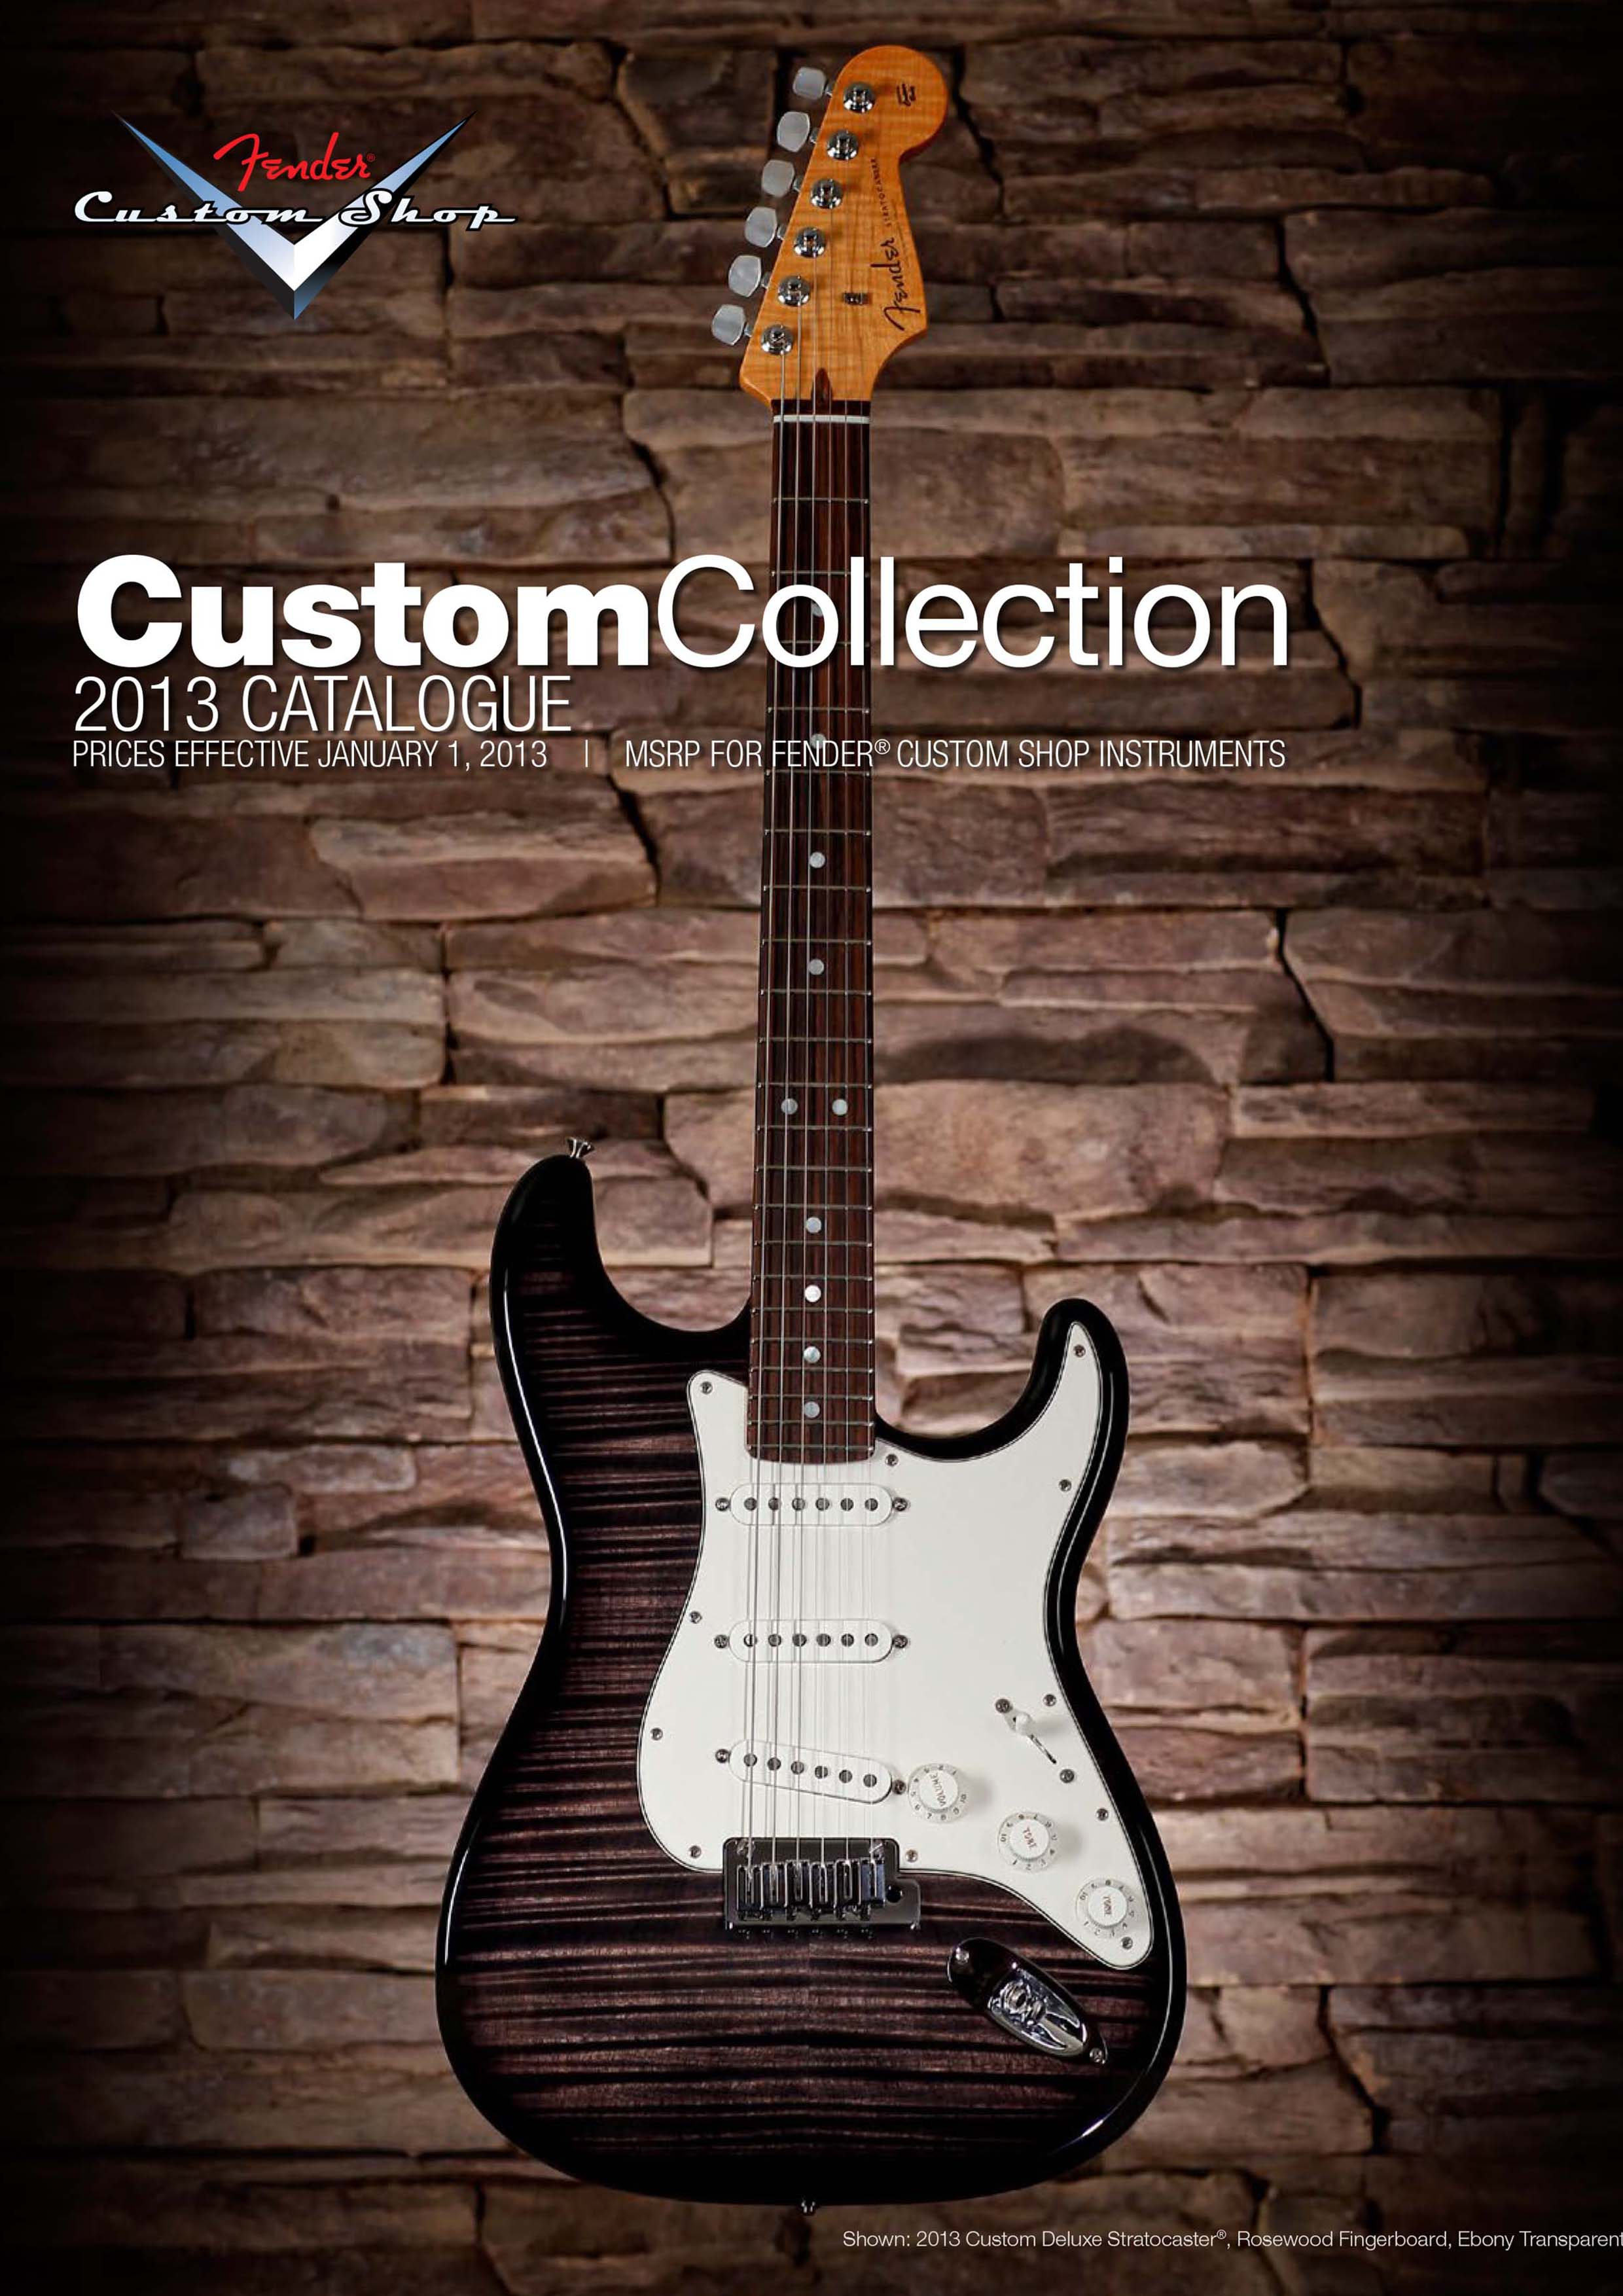 Custom Collection 2013